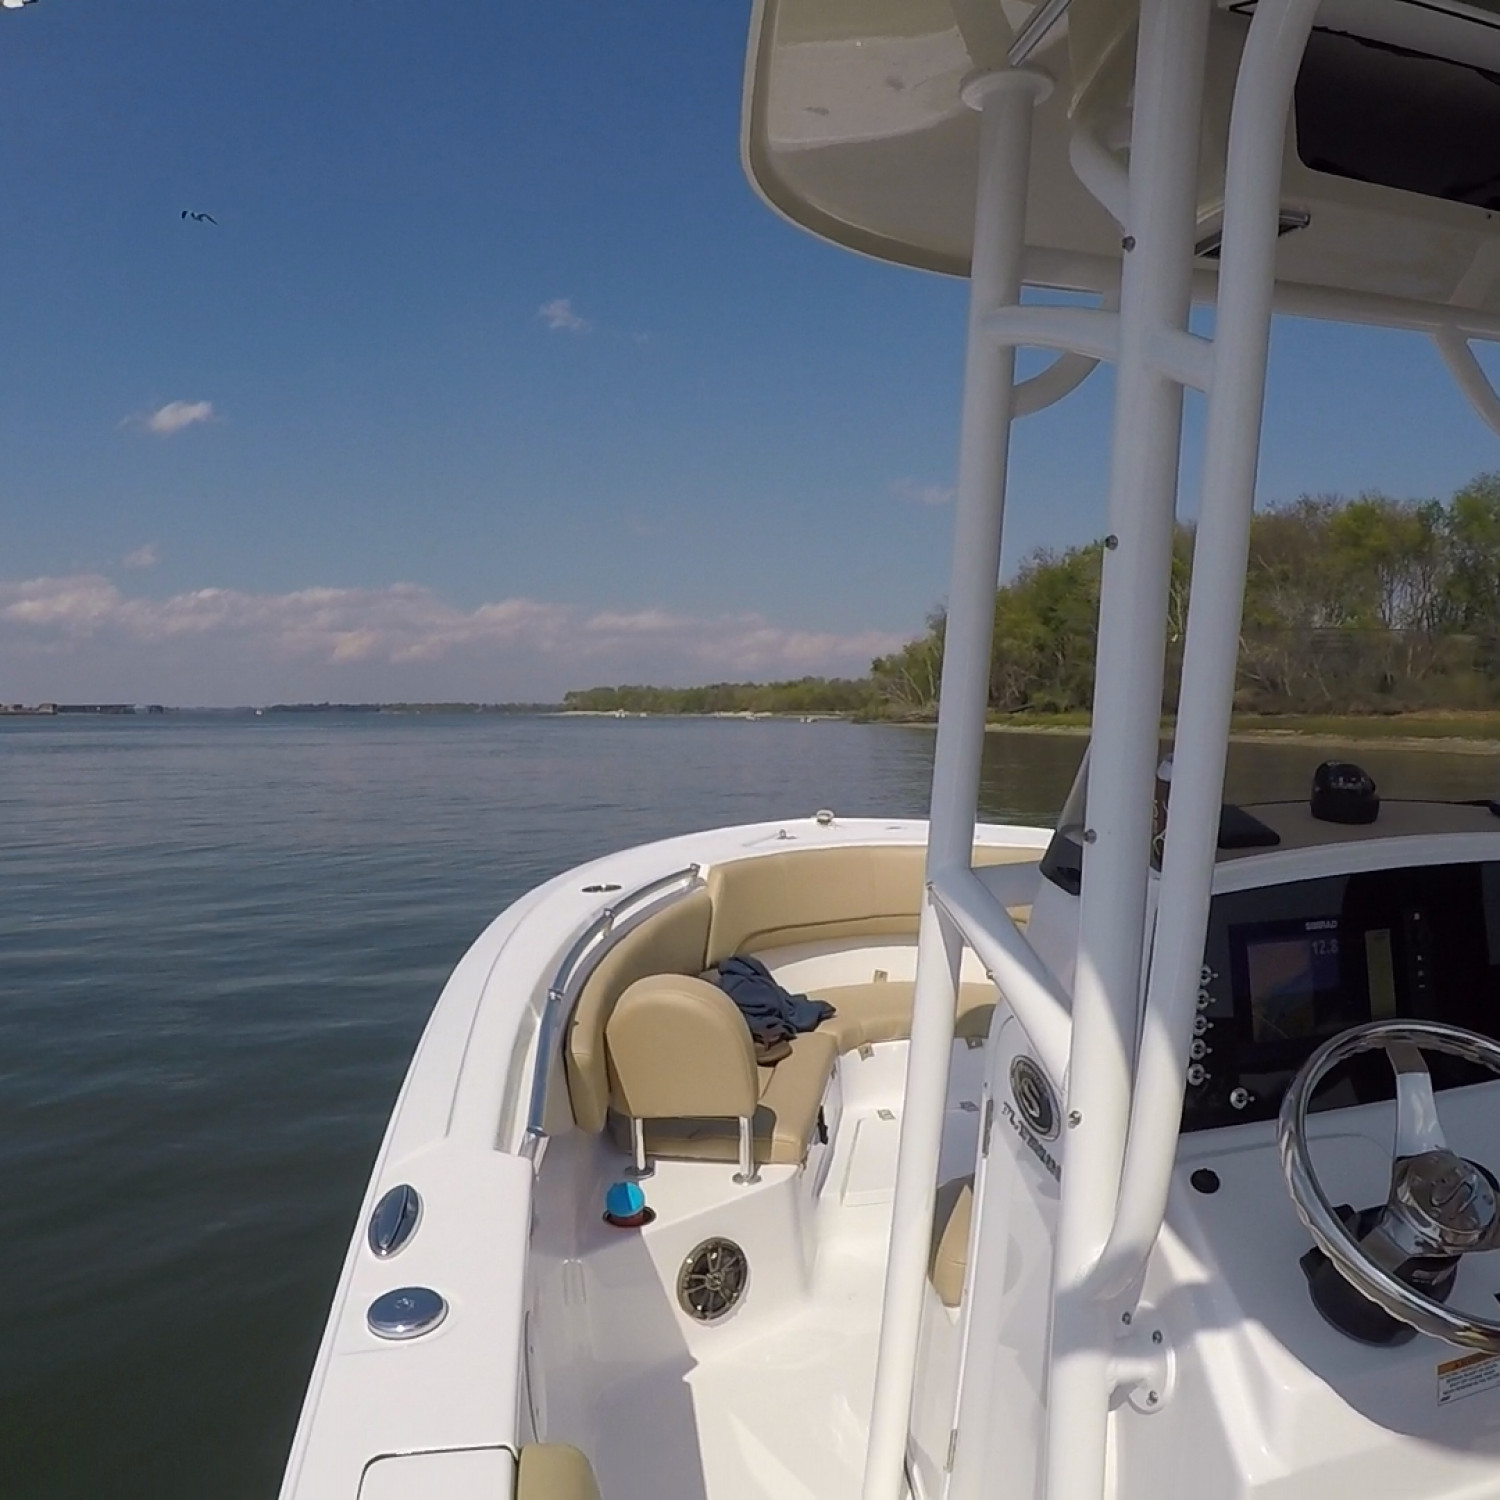 Title: Calm waters - On board their Sportsman Heritage 231 Center Console - Location: Cooper River near Drum Island, Charleston SC. Participating in the Photo Contest #SportsmanApril2018